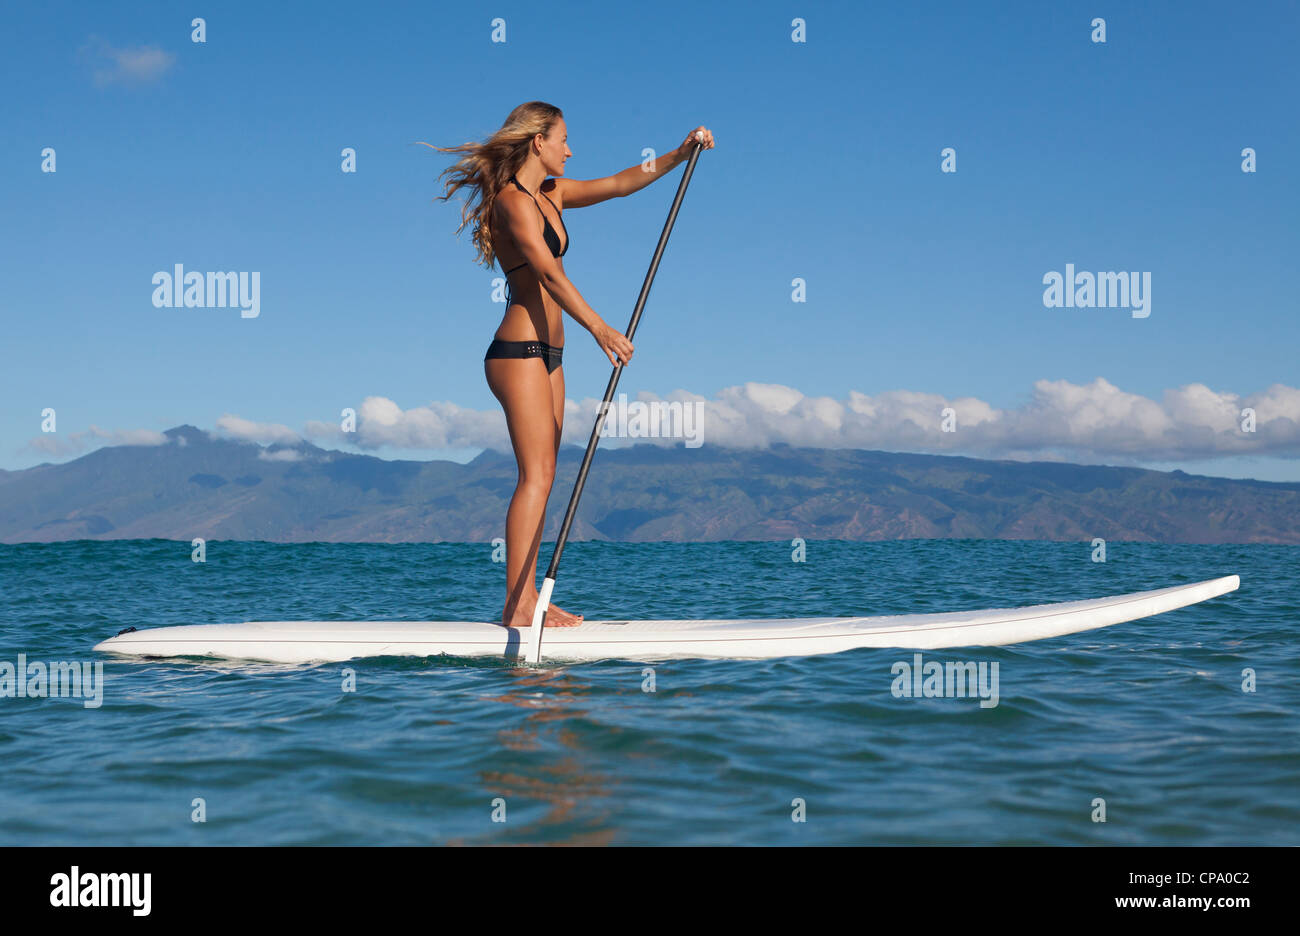 Fit, athletic woman stand up paddles at Napili Bay, Maui, Hawaii with Molokai in the distance. - Stock Image